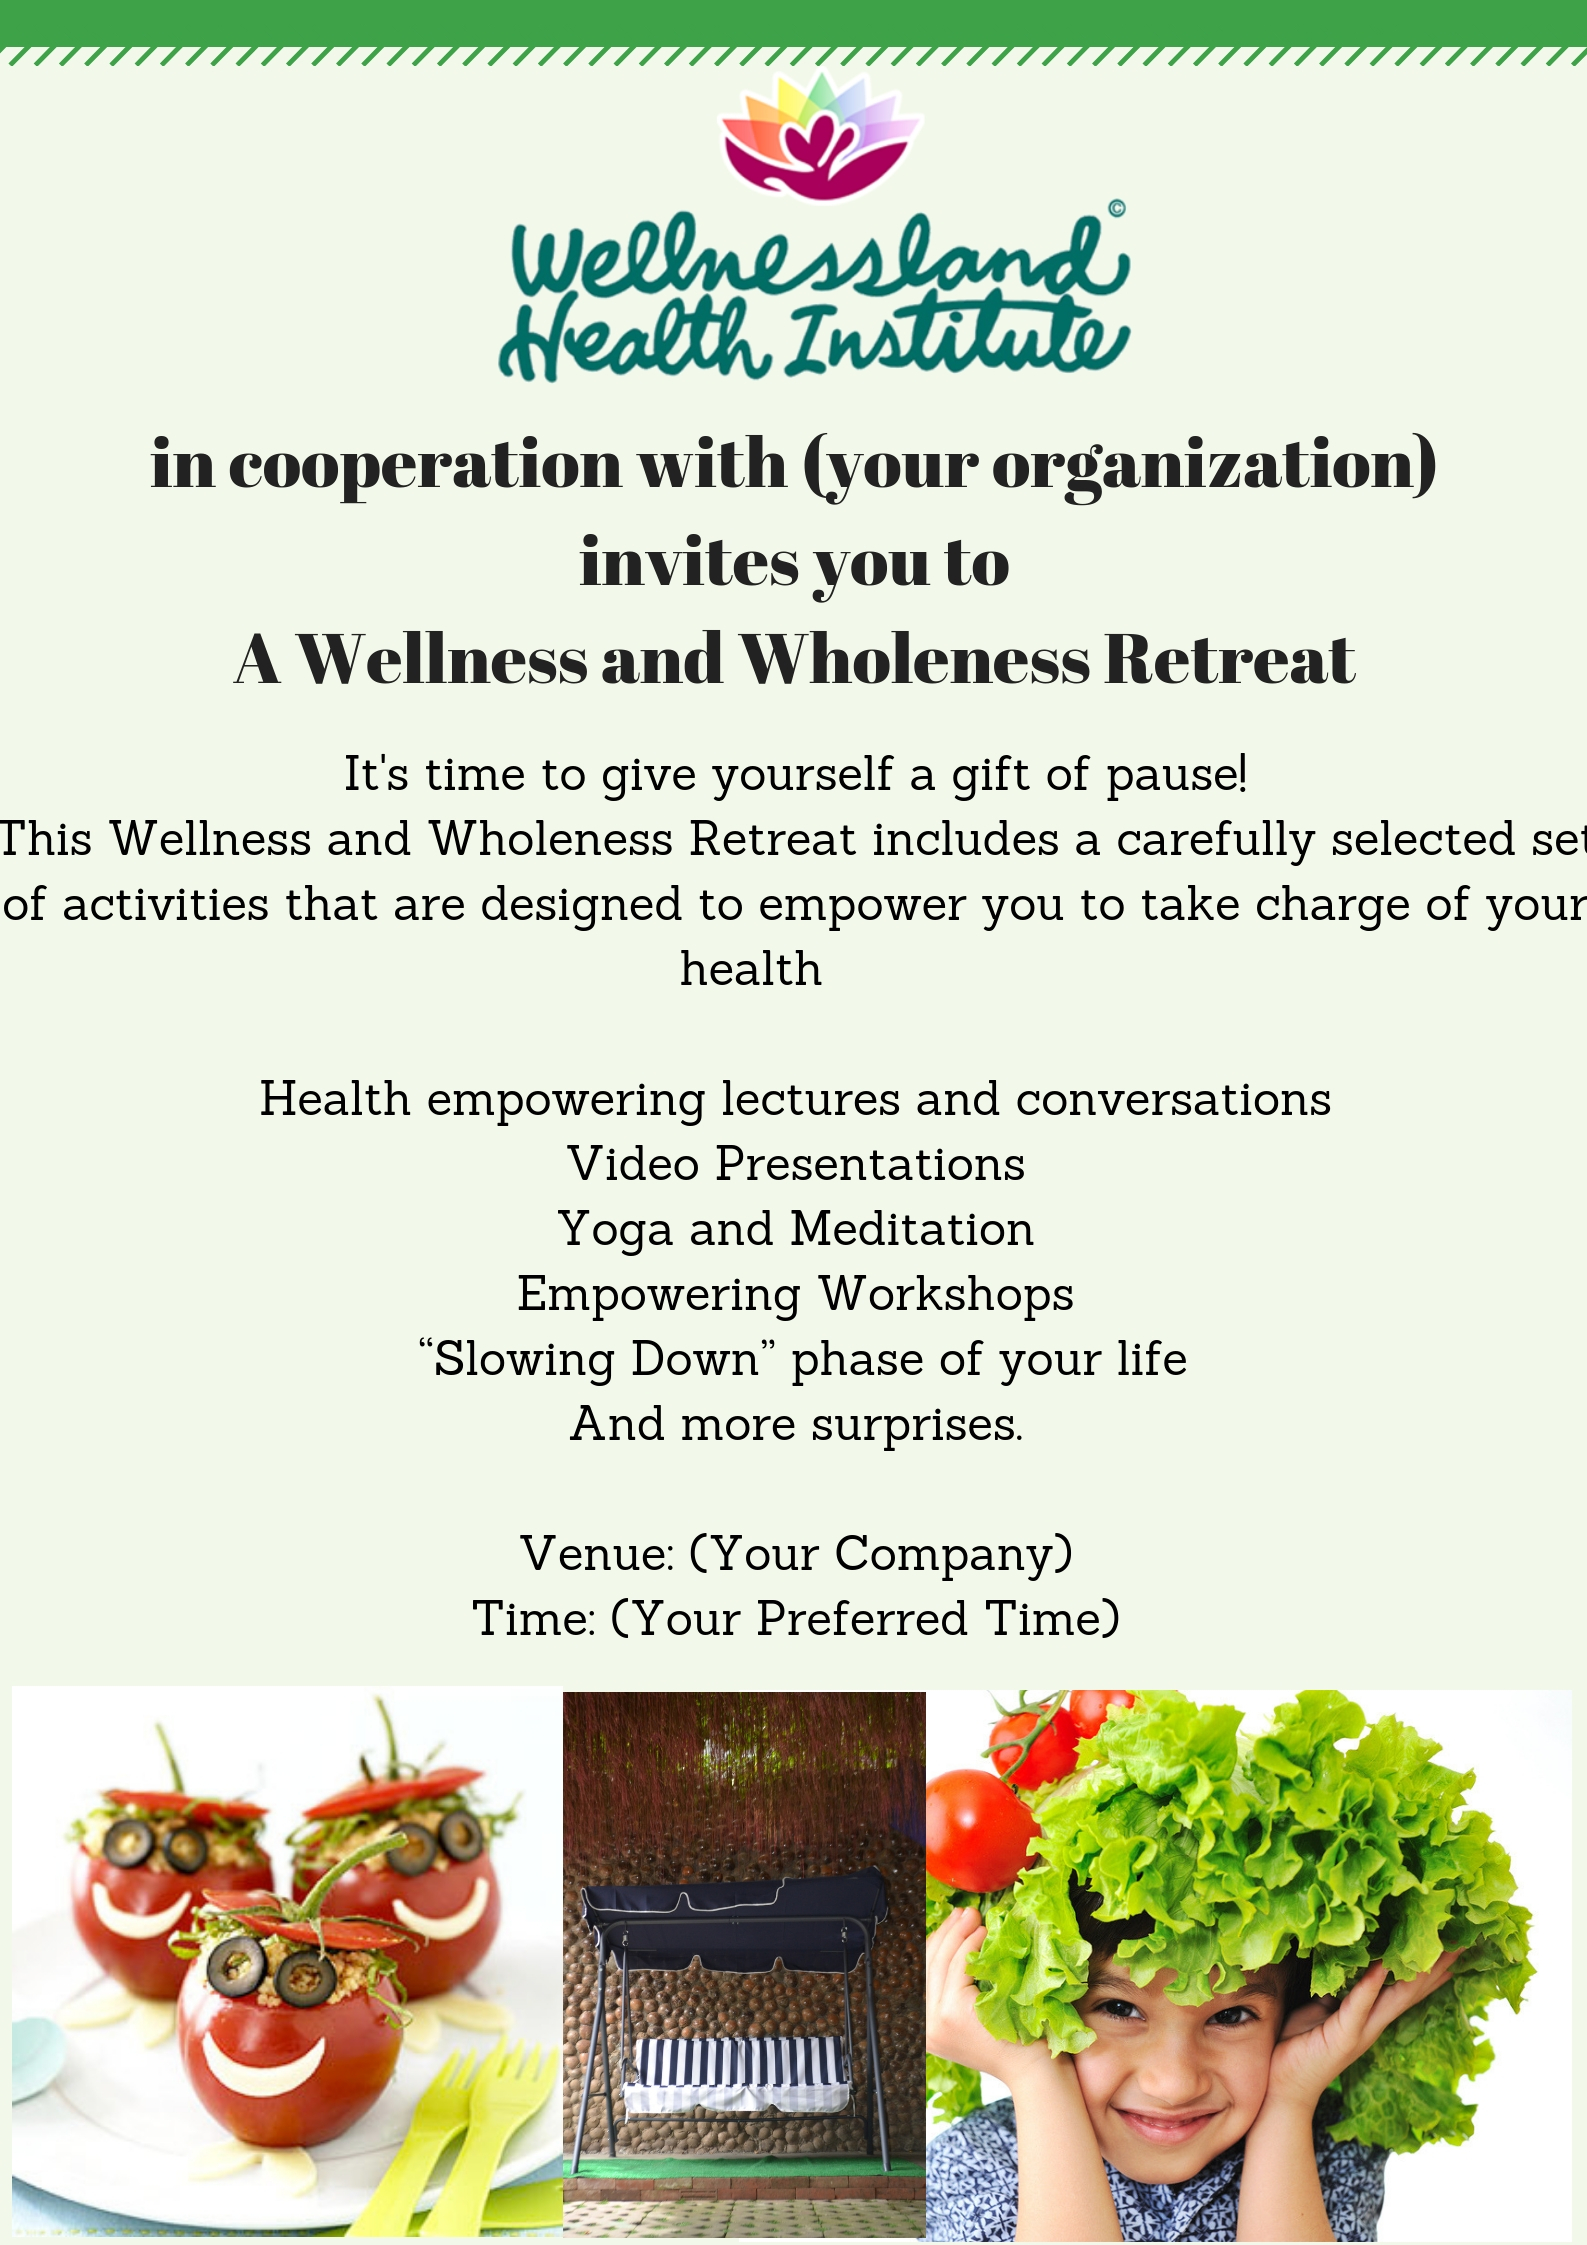 Wellness and Wholeness Retreat Poster for WHI Events.jpg